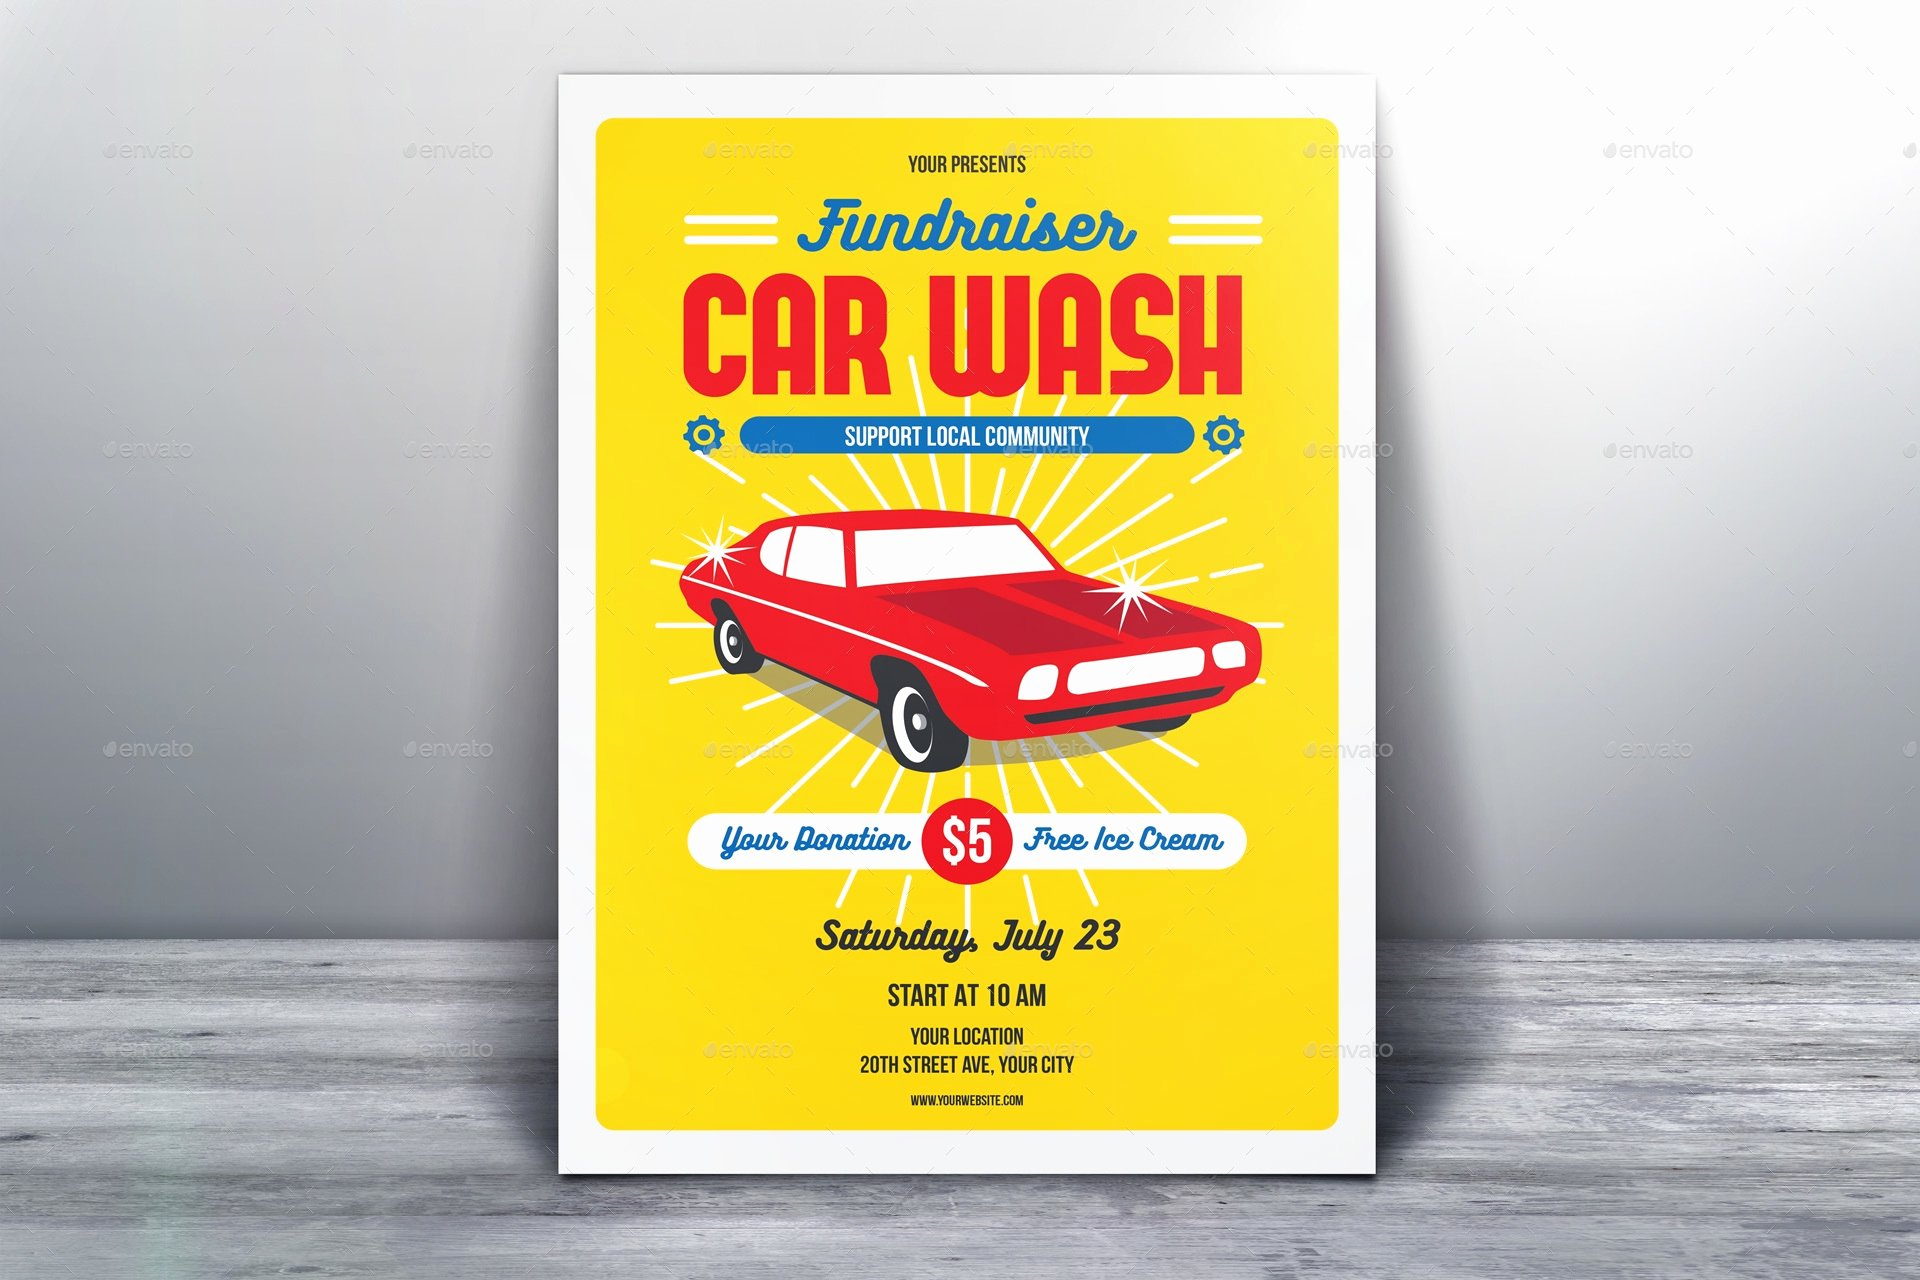 Car Wash Fundraiser Flyer Template Unique 43 Elegant Fundraising Flyer Templates Word Psd Ai